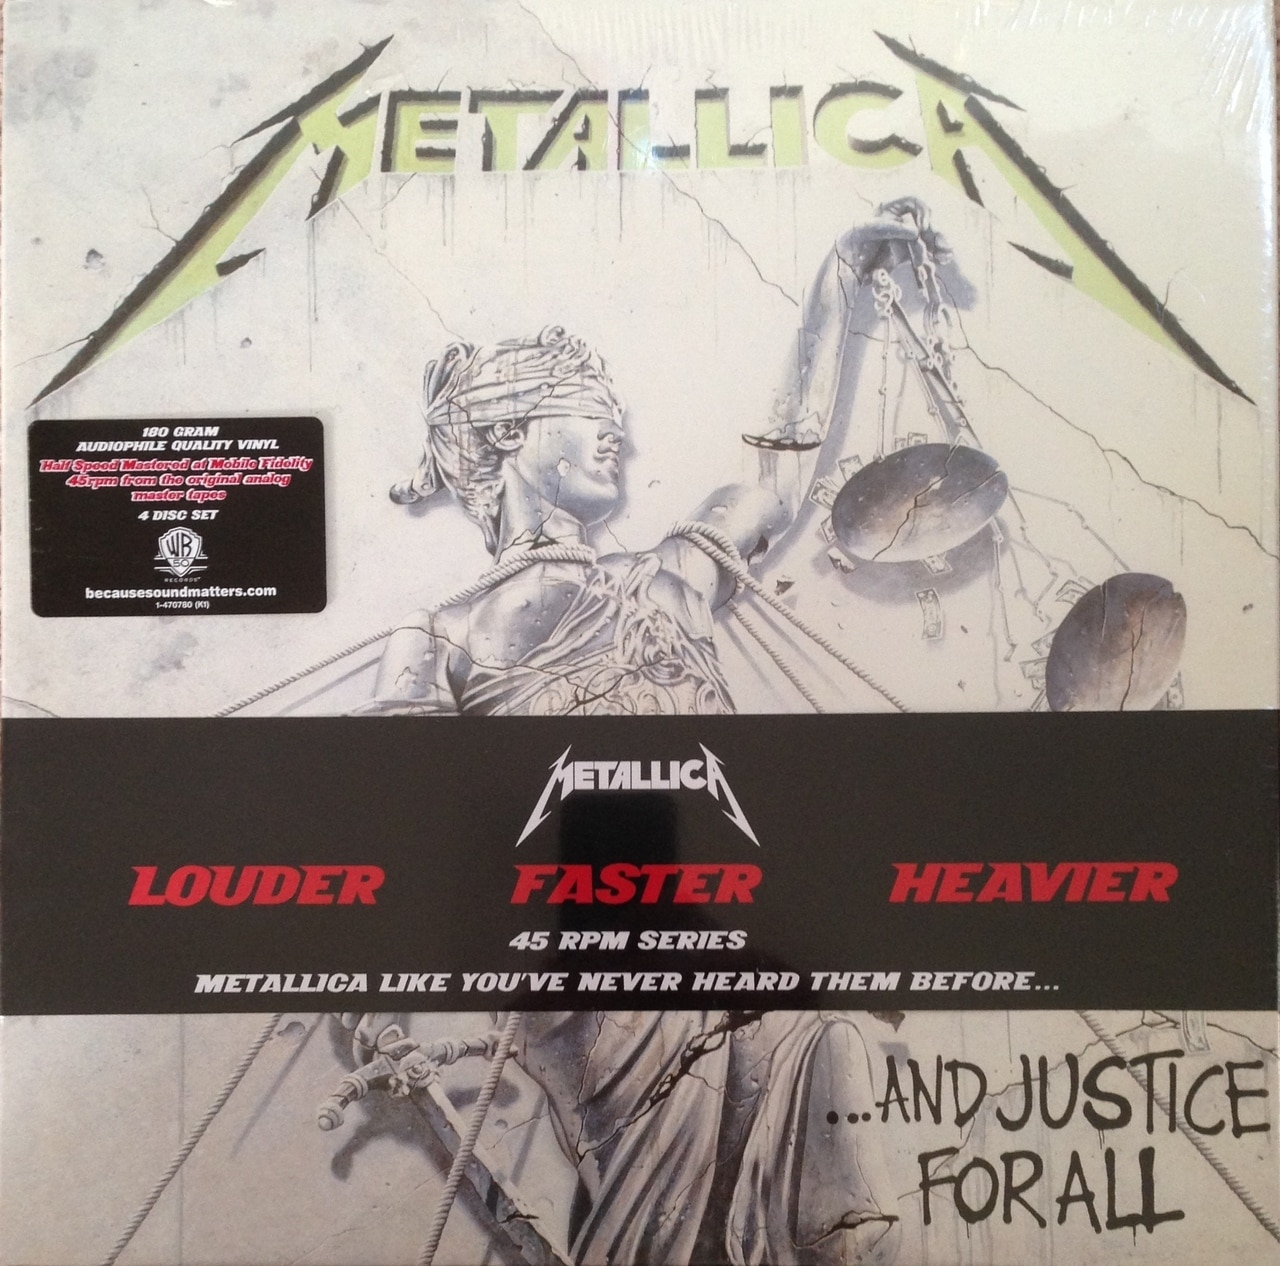 644)Metallica - ...And Justice For All (180g 45rpm Vinyl 4LP Box Set)